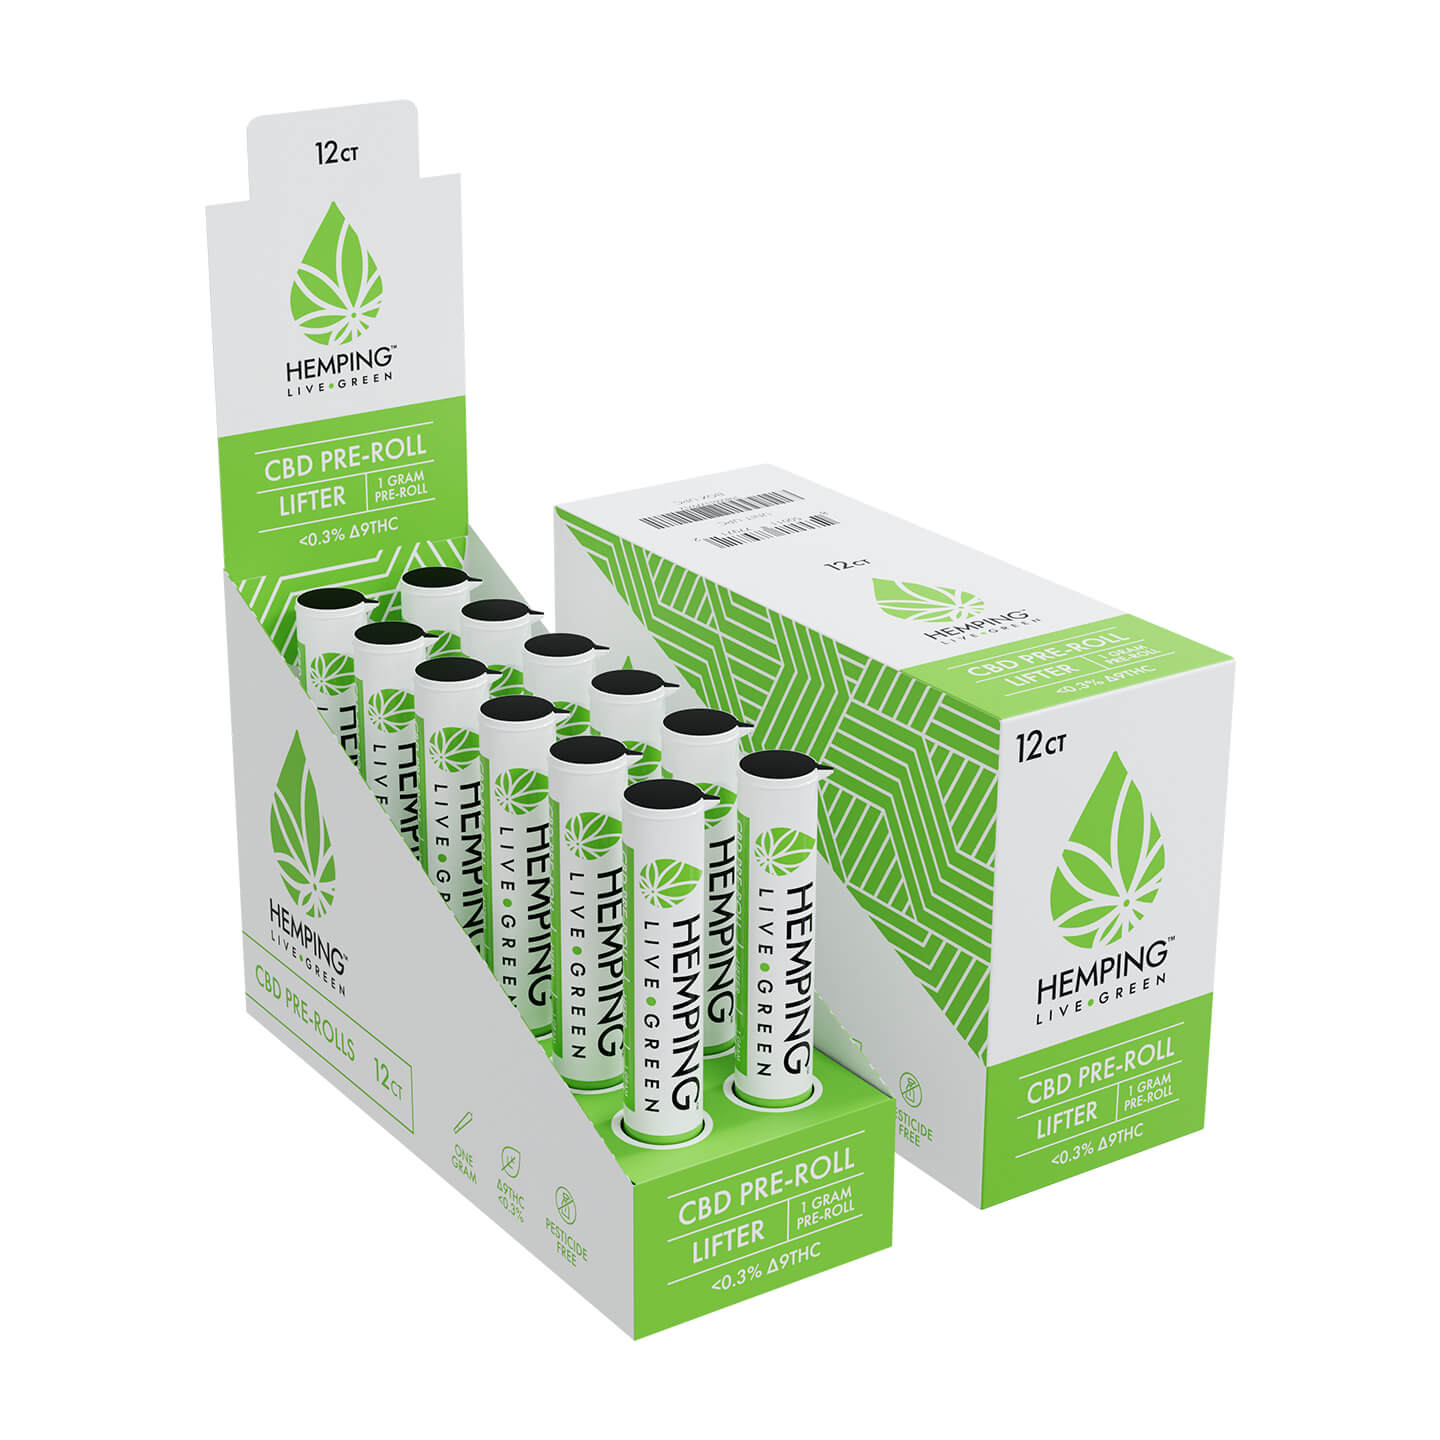 hemping flower cbd pre roll lifter box